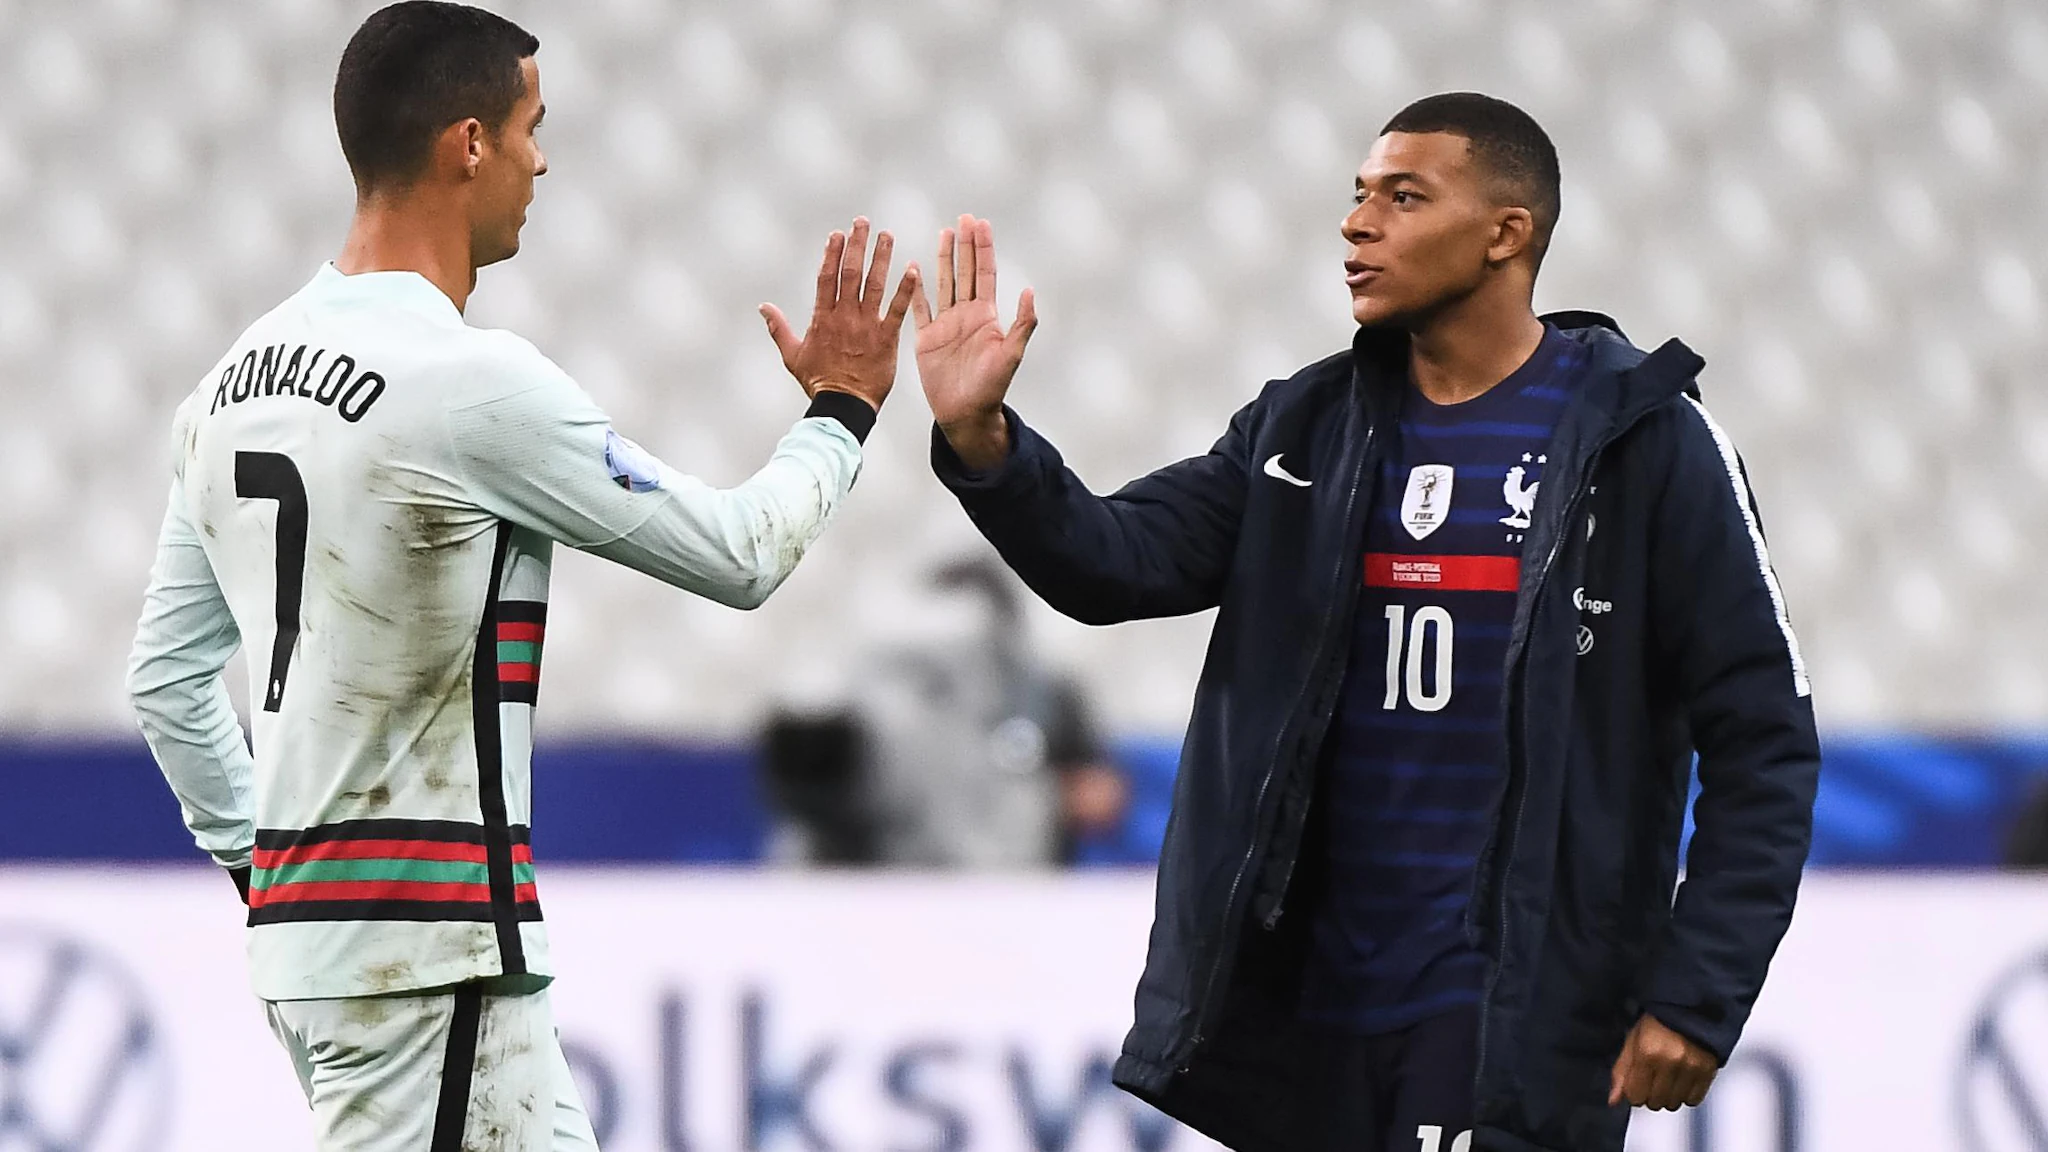 Cristiano Ronaldo and Kylian Mbappe will spearhead their nation's attacks